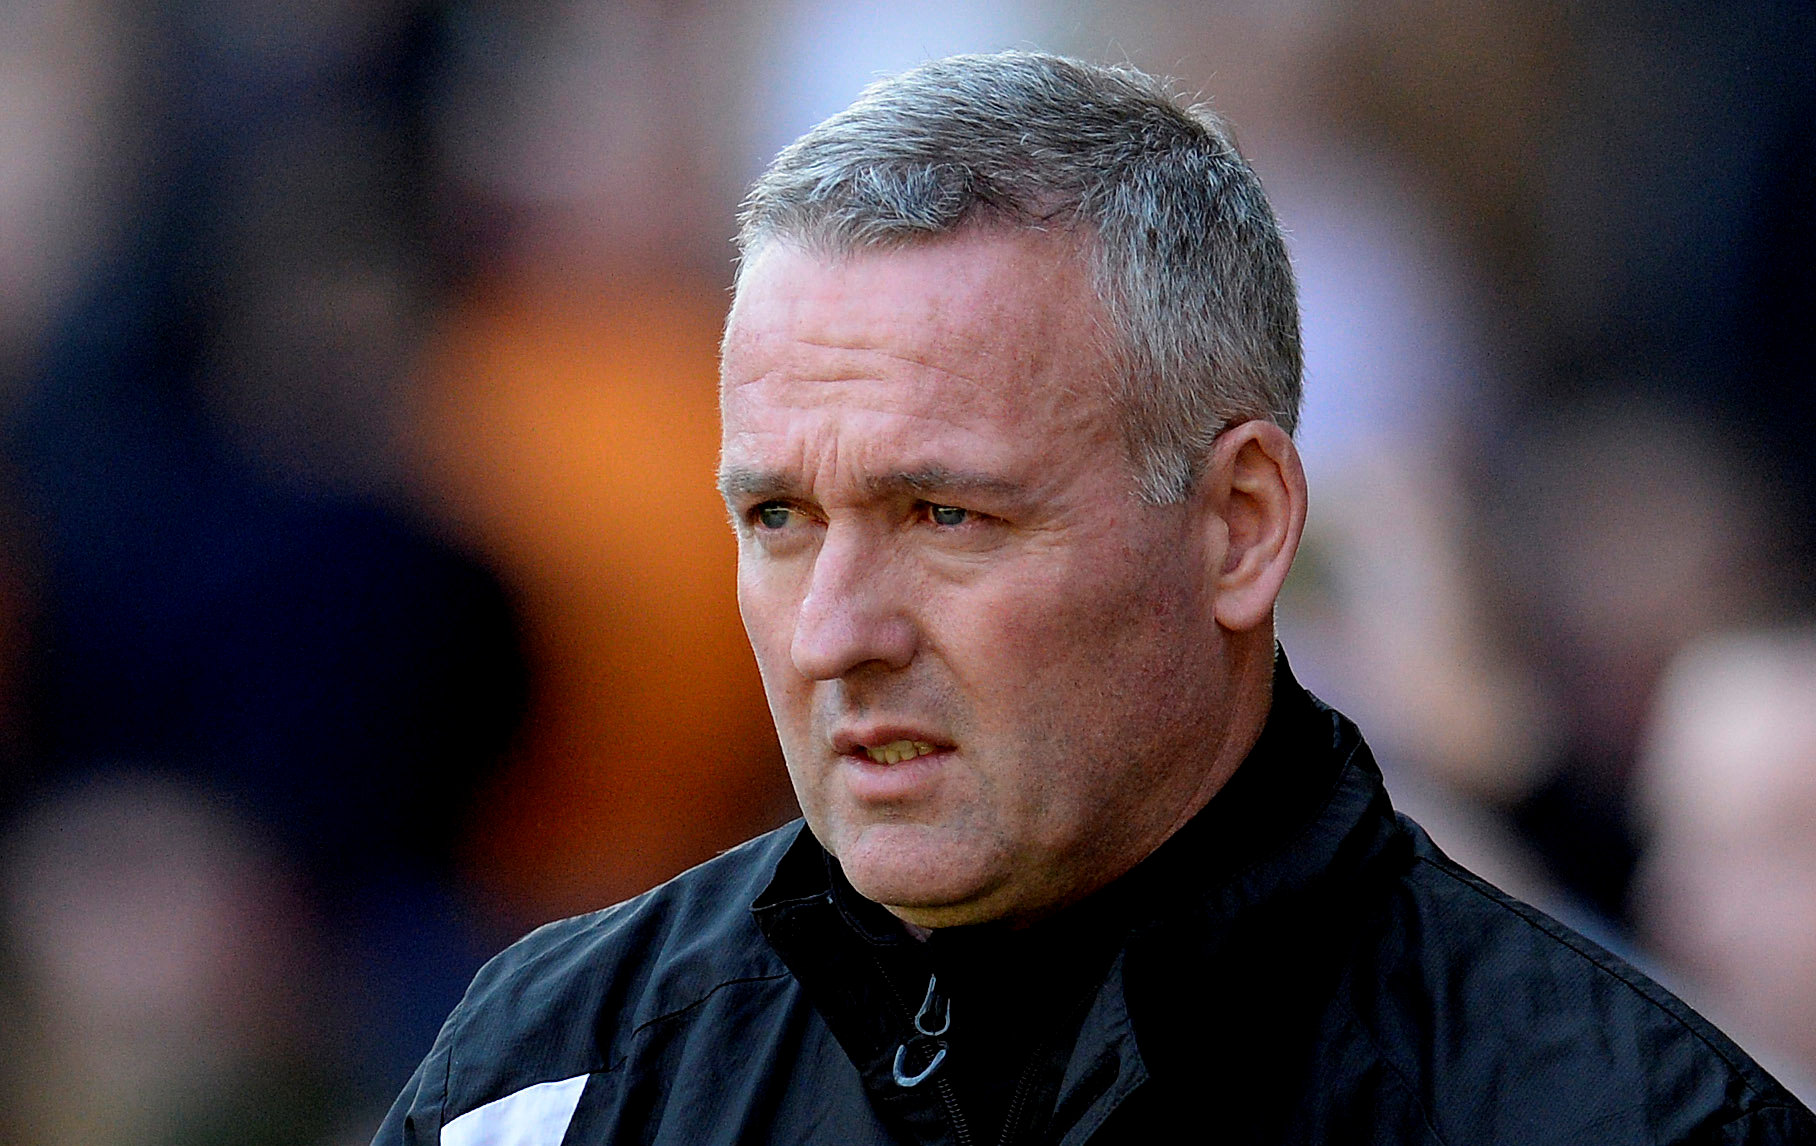 Football: Stoke City appoint Paul Lambert as manager